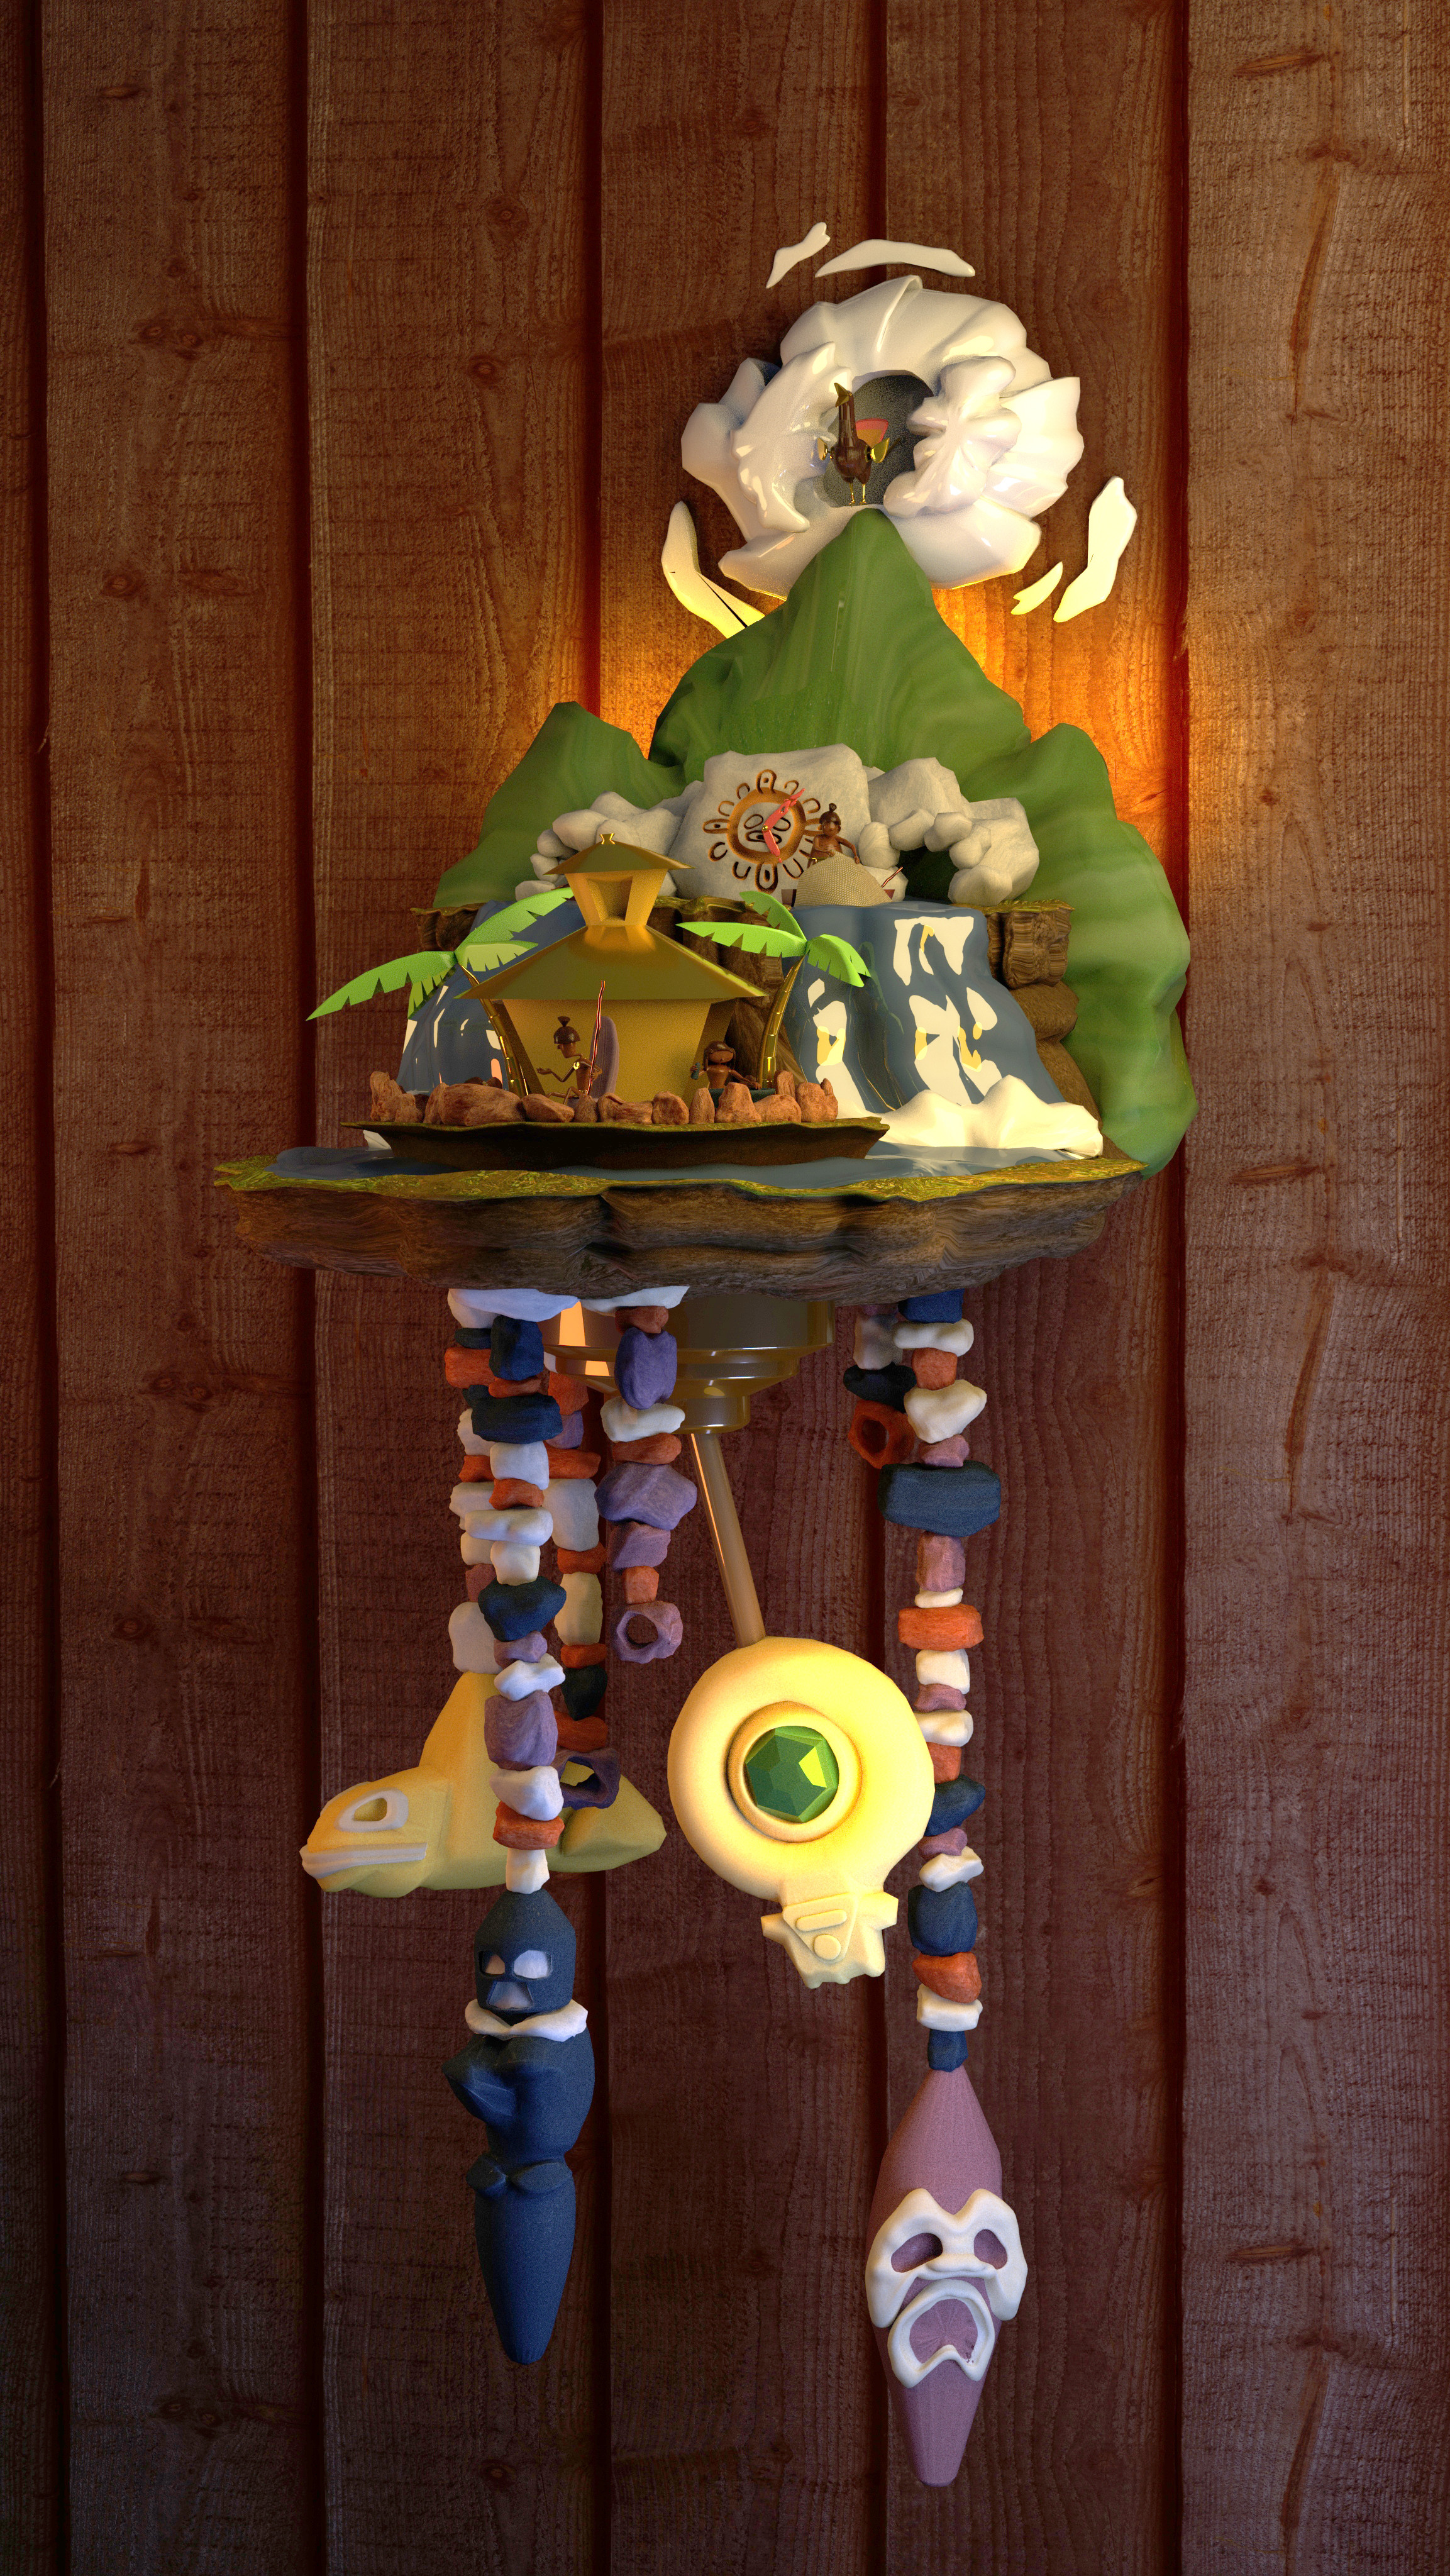 Full side view of Cuckoo Clock